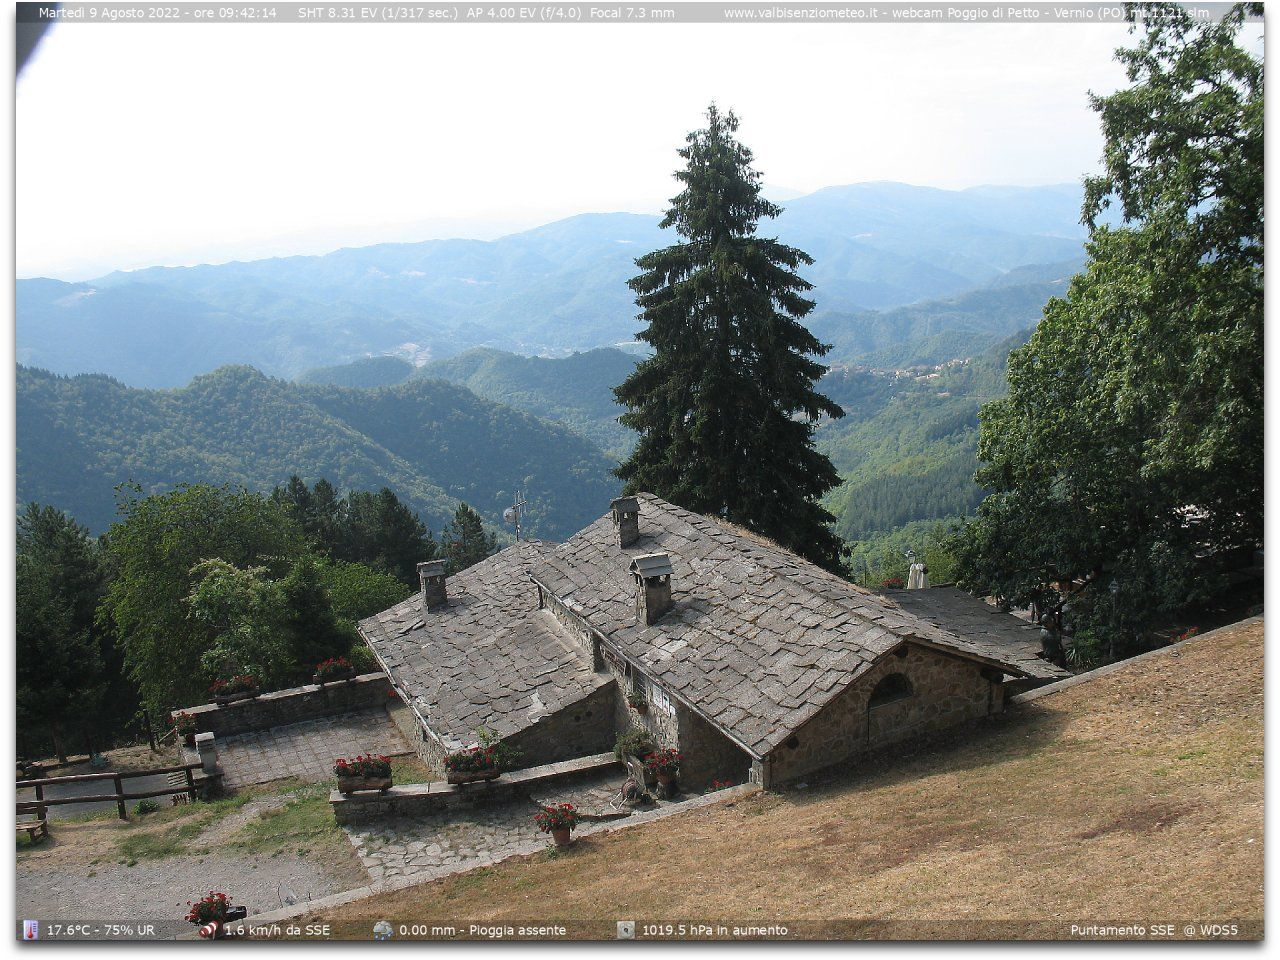 webcam  Poggio di Petto, Vernio (PO, 1121 m), webcam provincia di Prato, webcam Toscana, Webcam Toscana